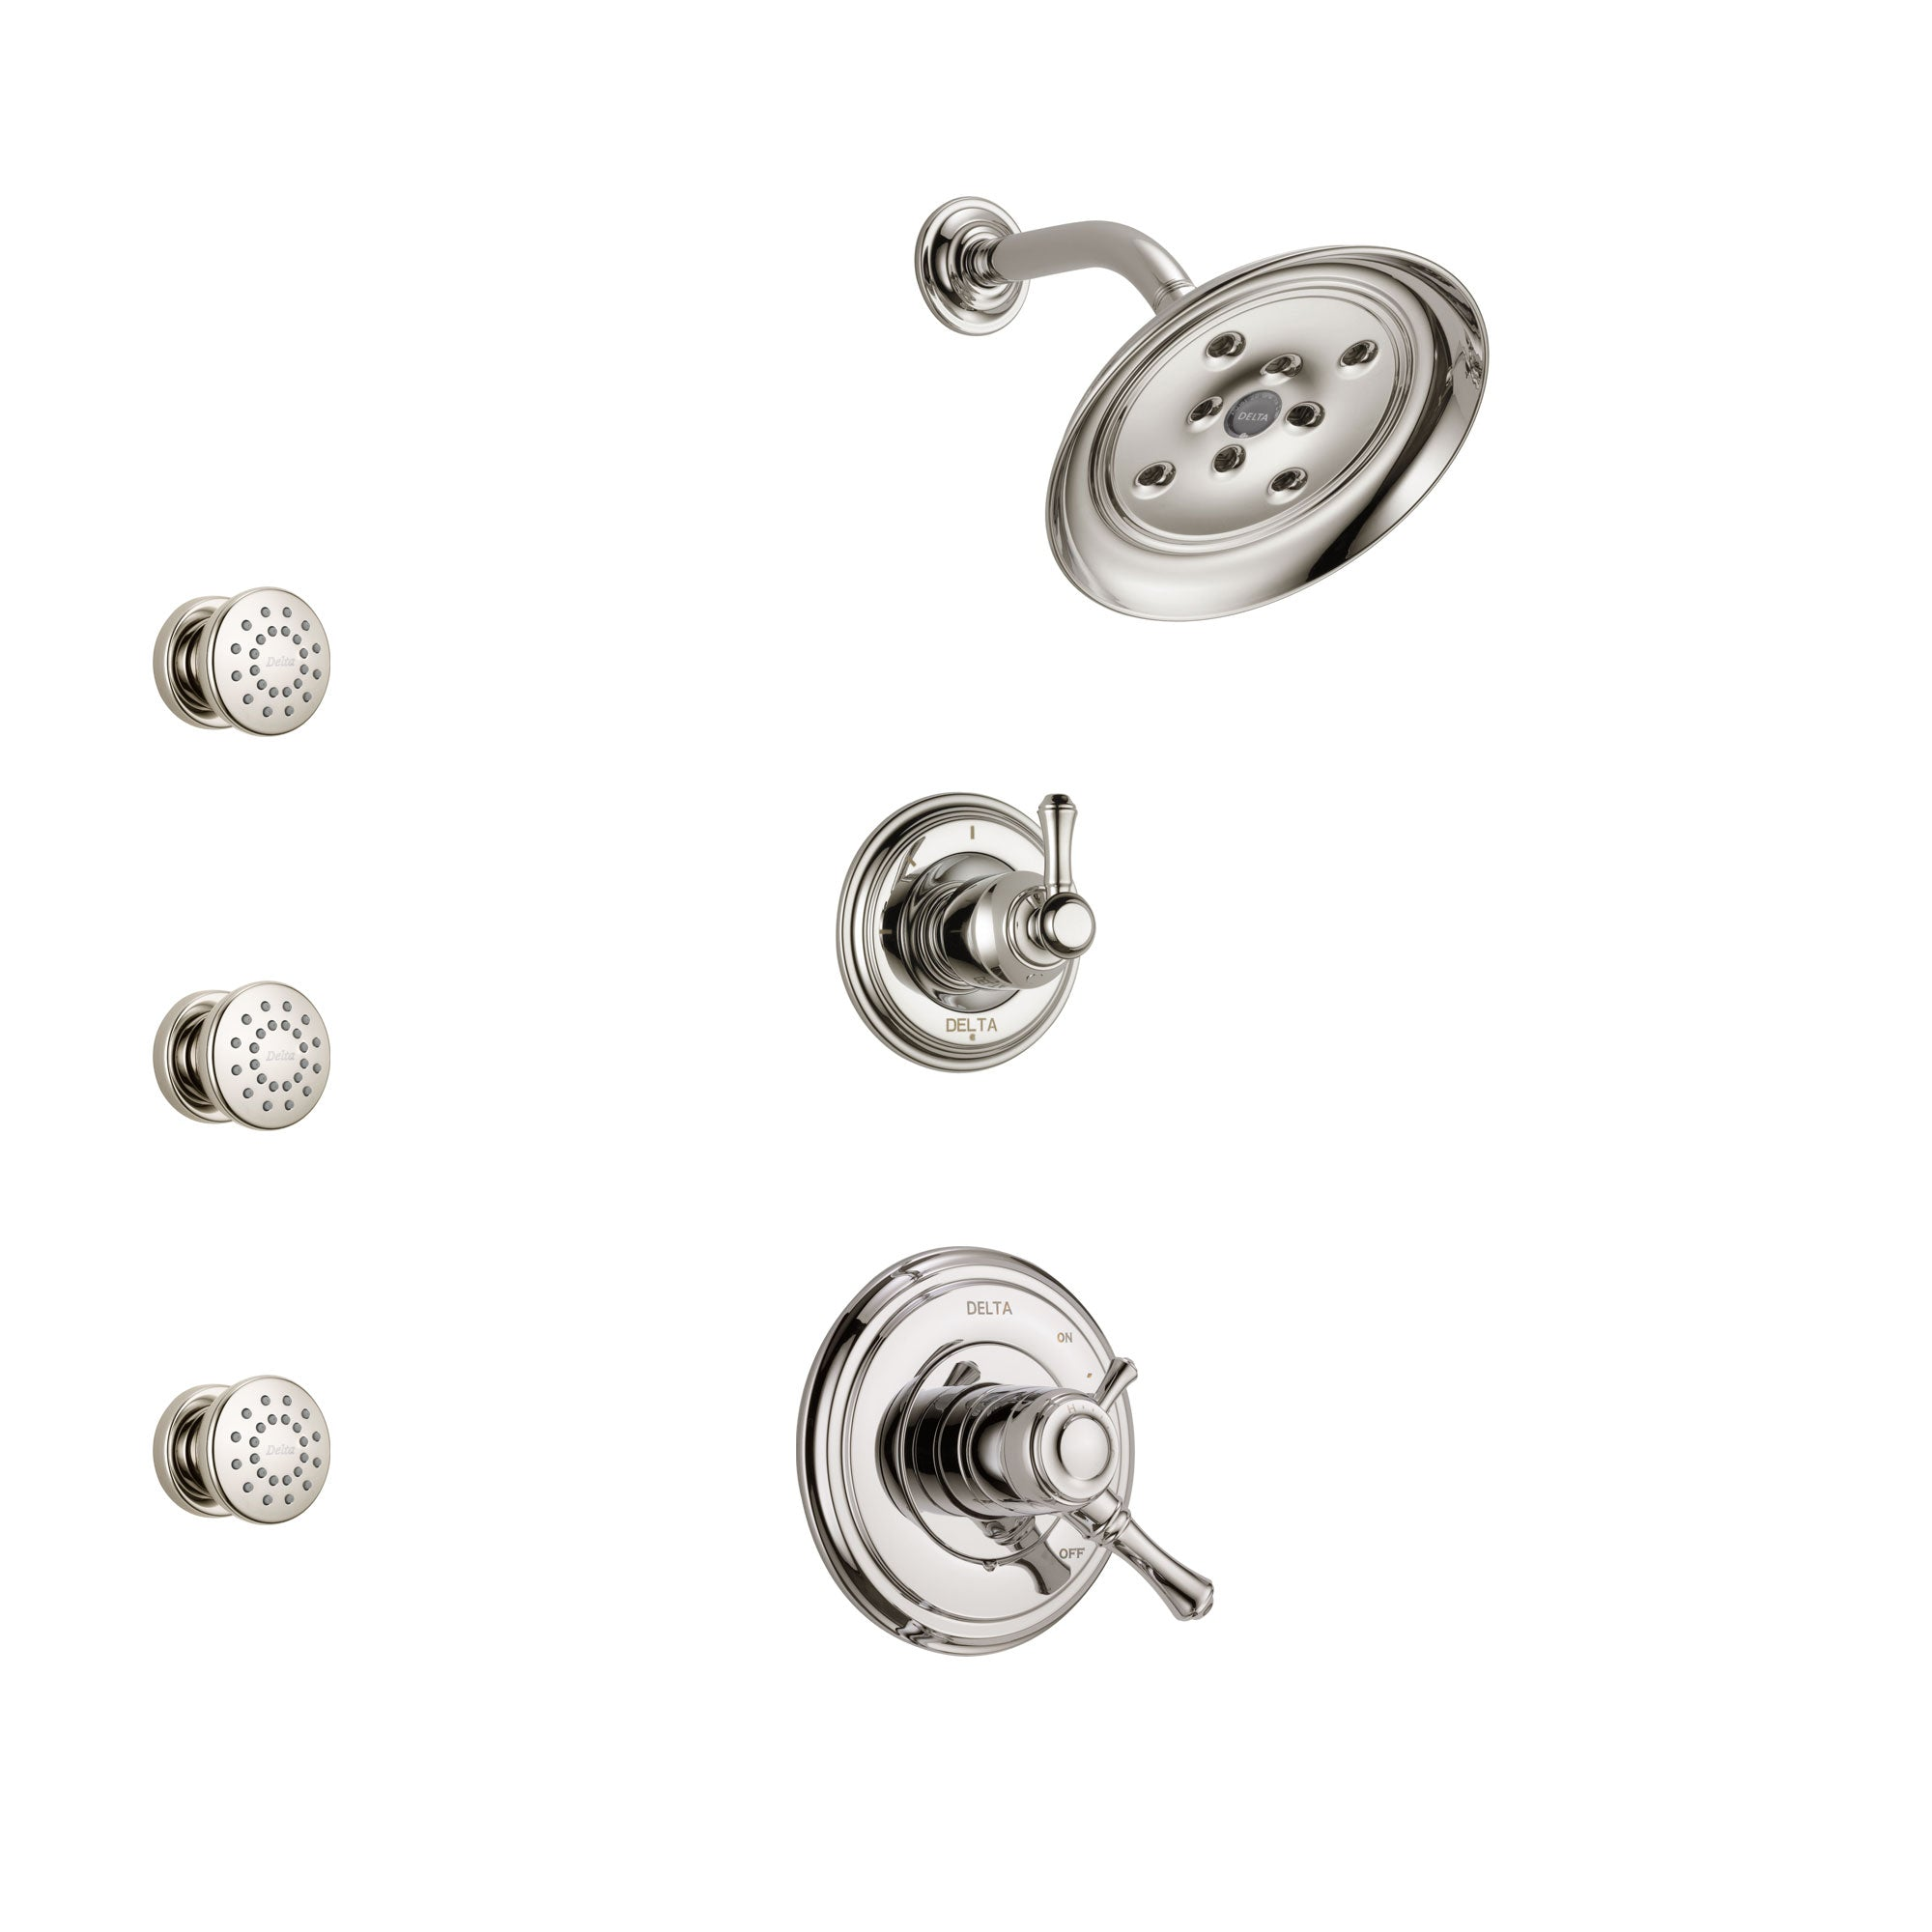 Delta Cassidy Polished Nickel Finish Shower System with Dual Control Handle, 3-Setting Diverter, Showerhead, and 3 Body Sprays SS17297PN1